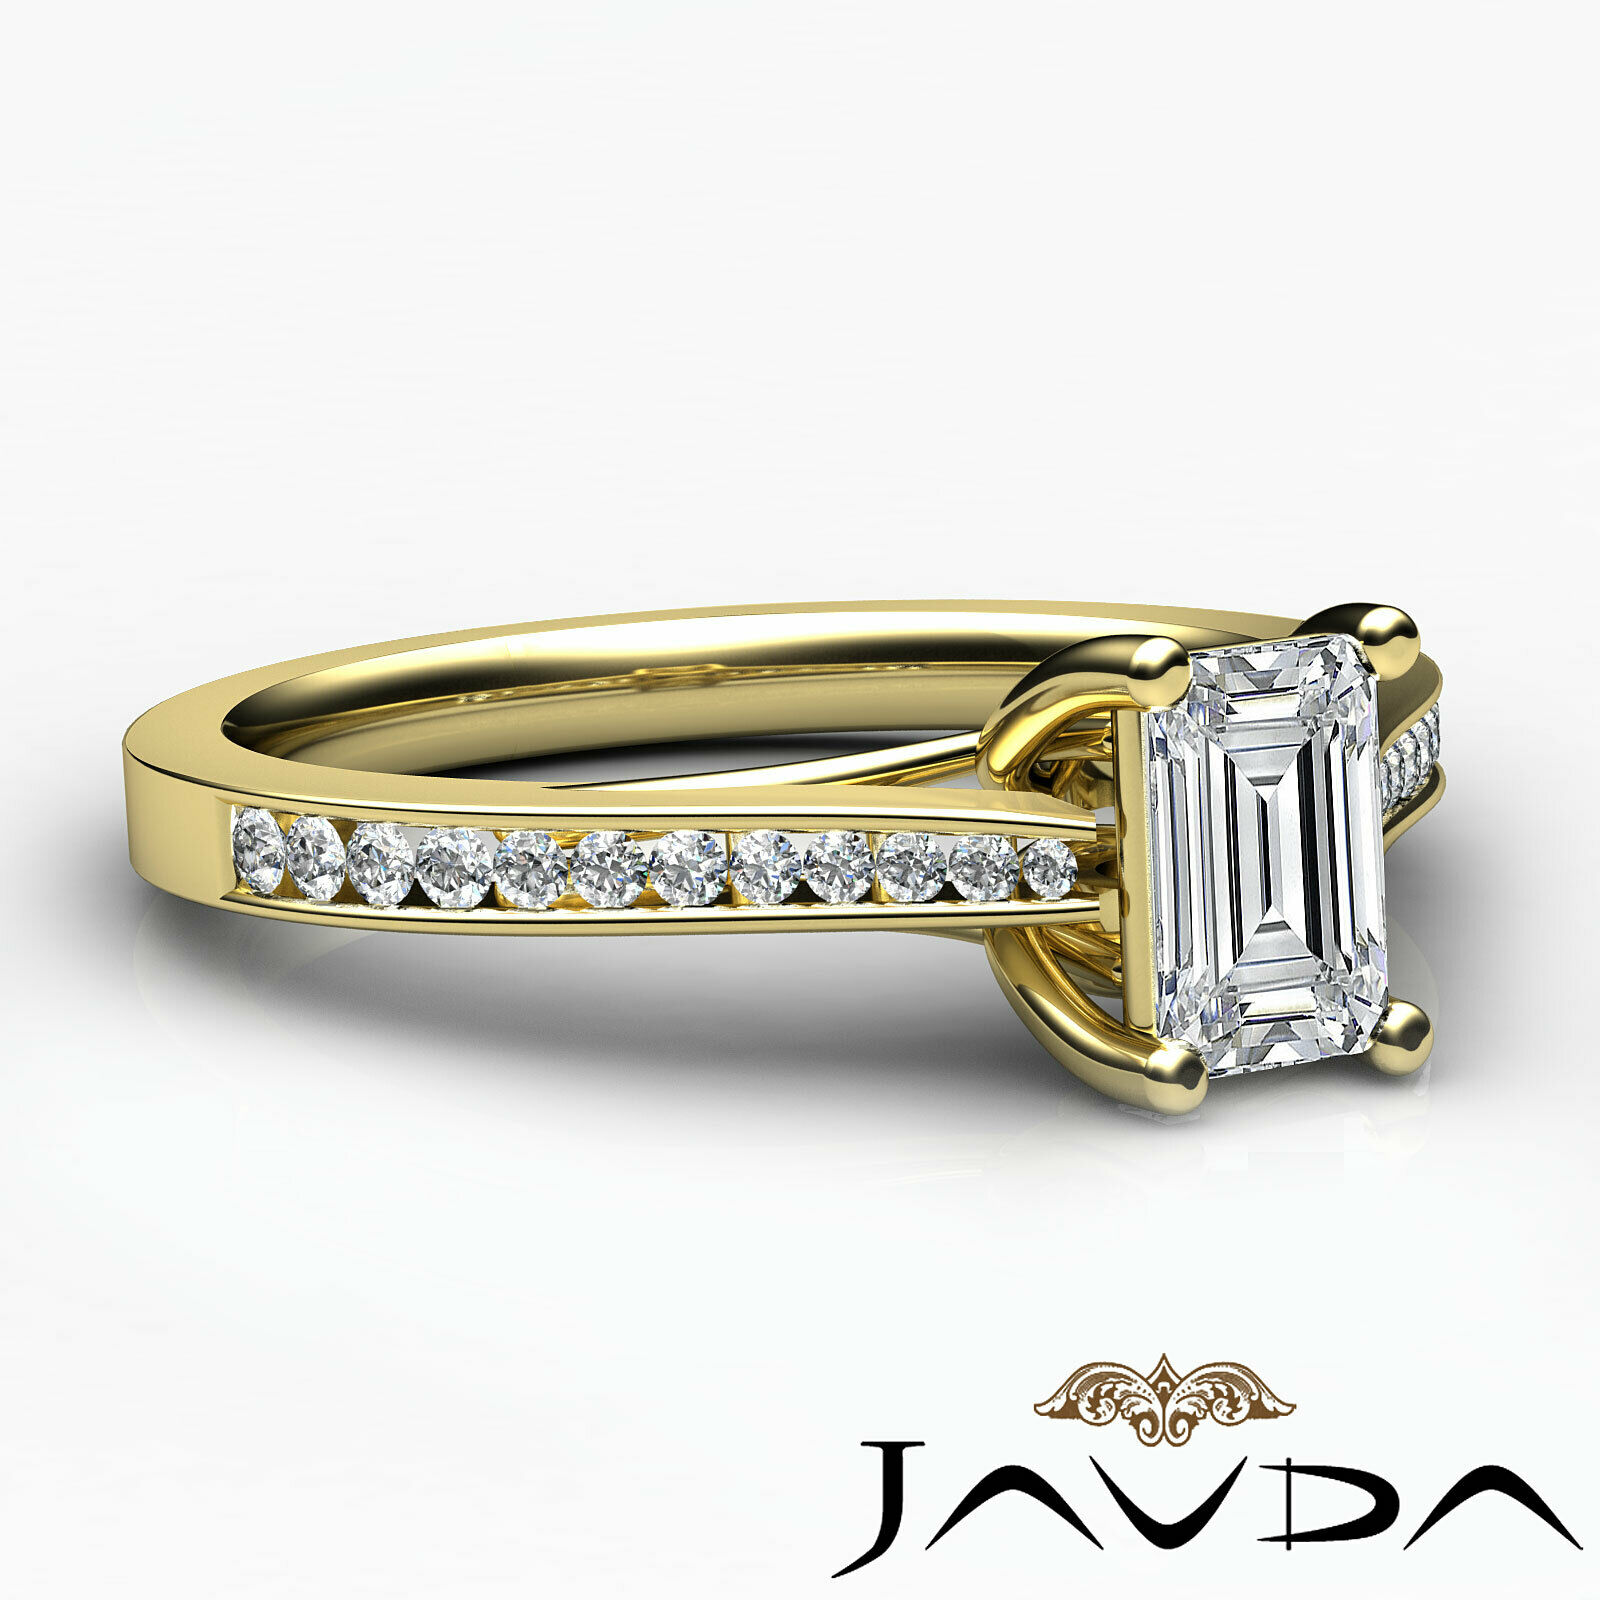 1Ctw Channel Set Emerald Diamond Engagement Her Ring Band GIA H-VVS1 White Gold 10